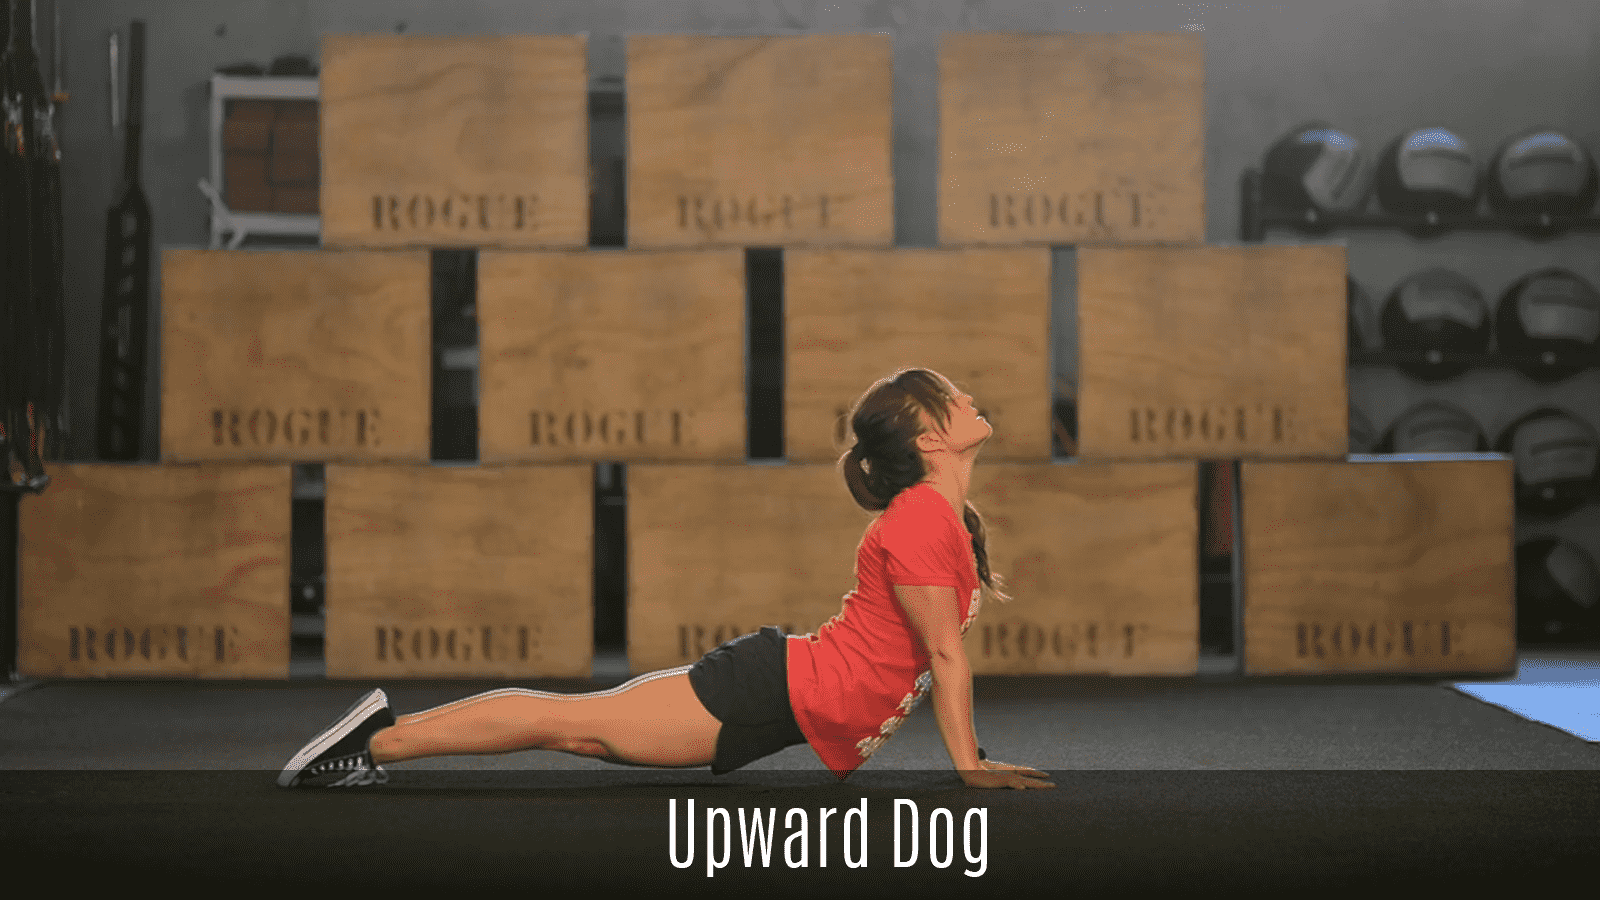 upward dog movement demo